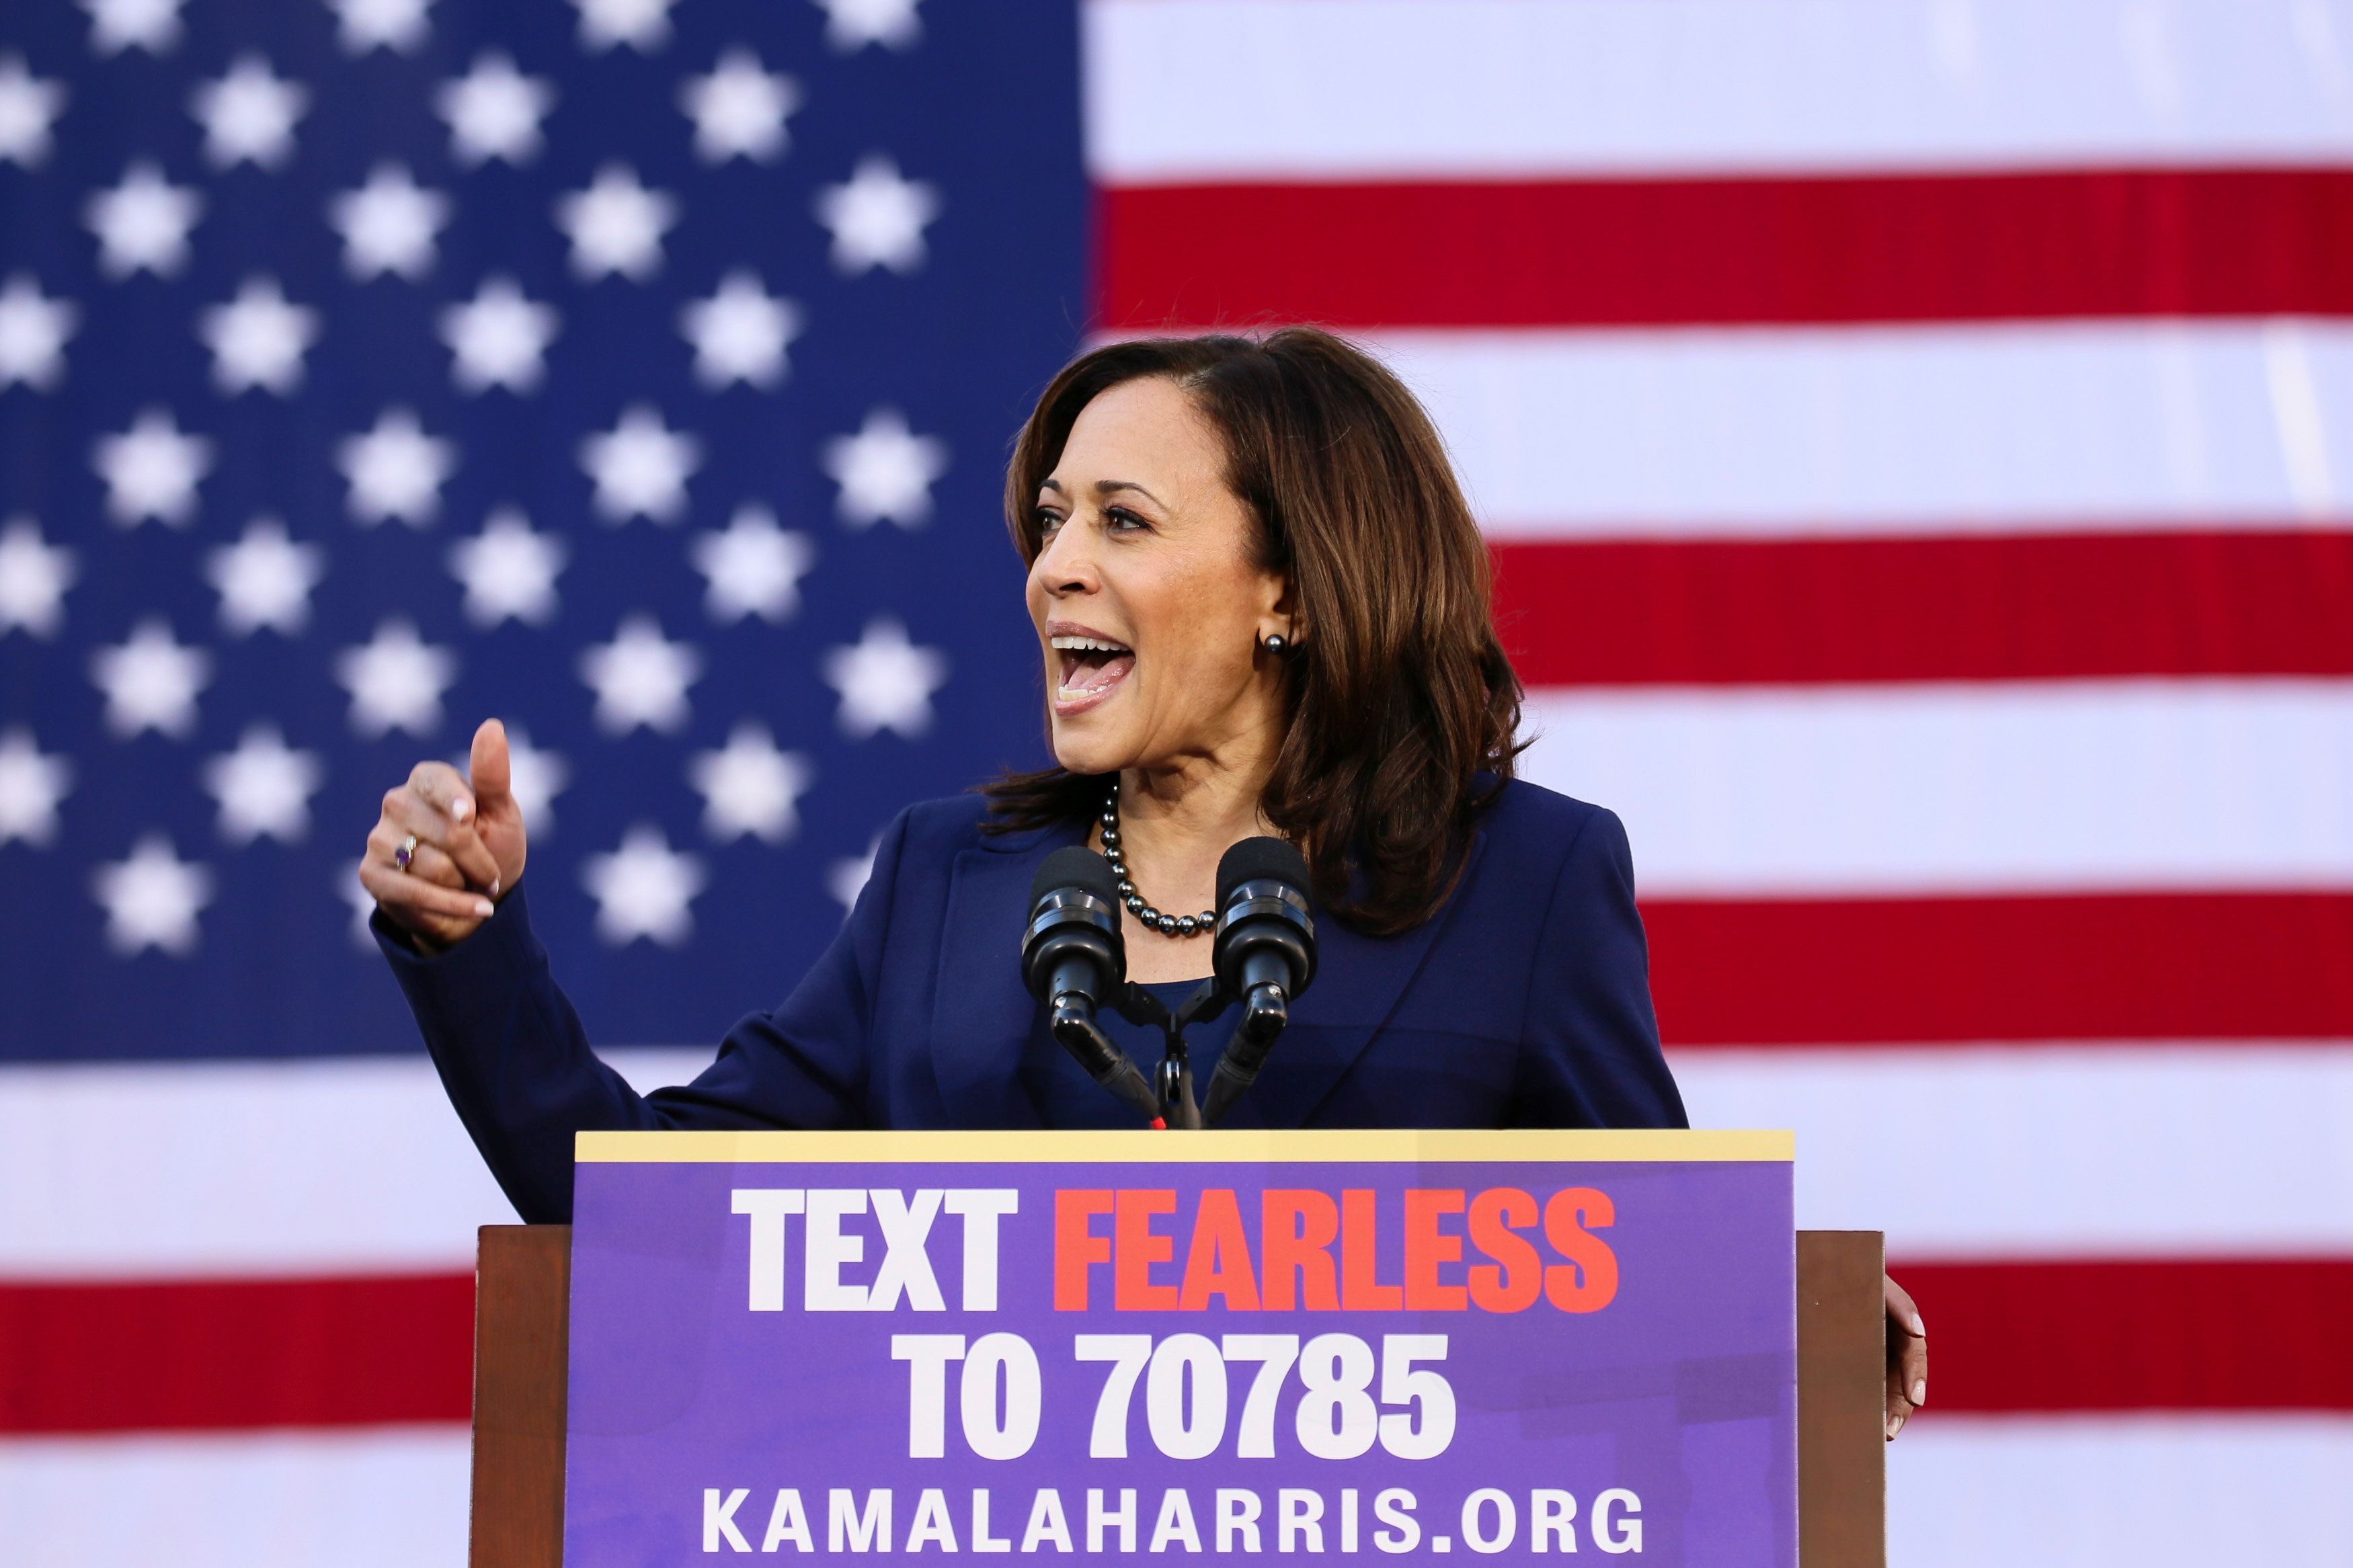 Kamala Harris Kicks Off Her 2020 Campaign With Vow To Fight 'For The